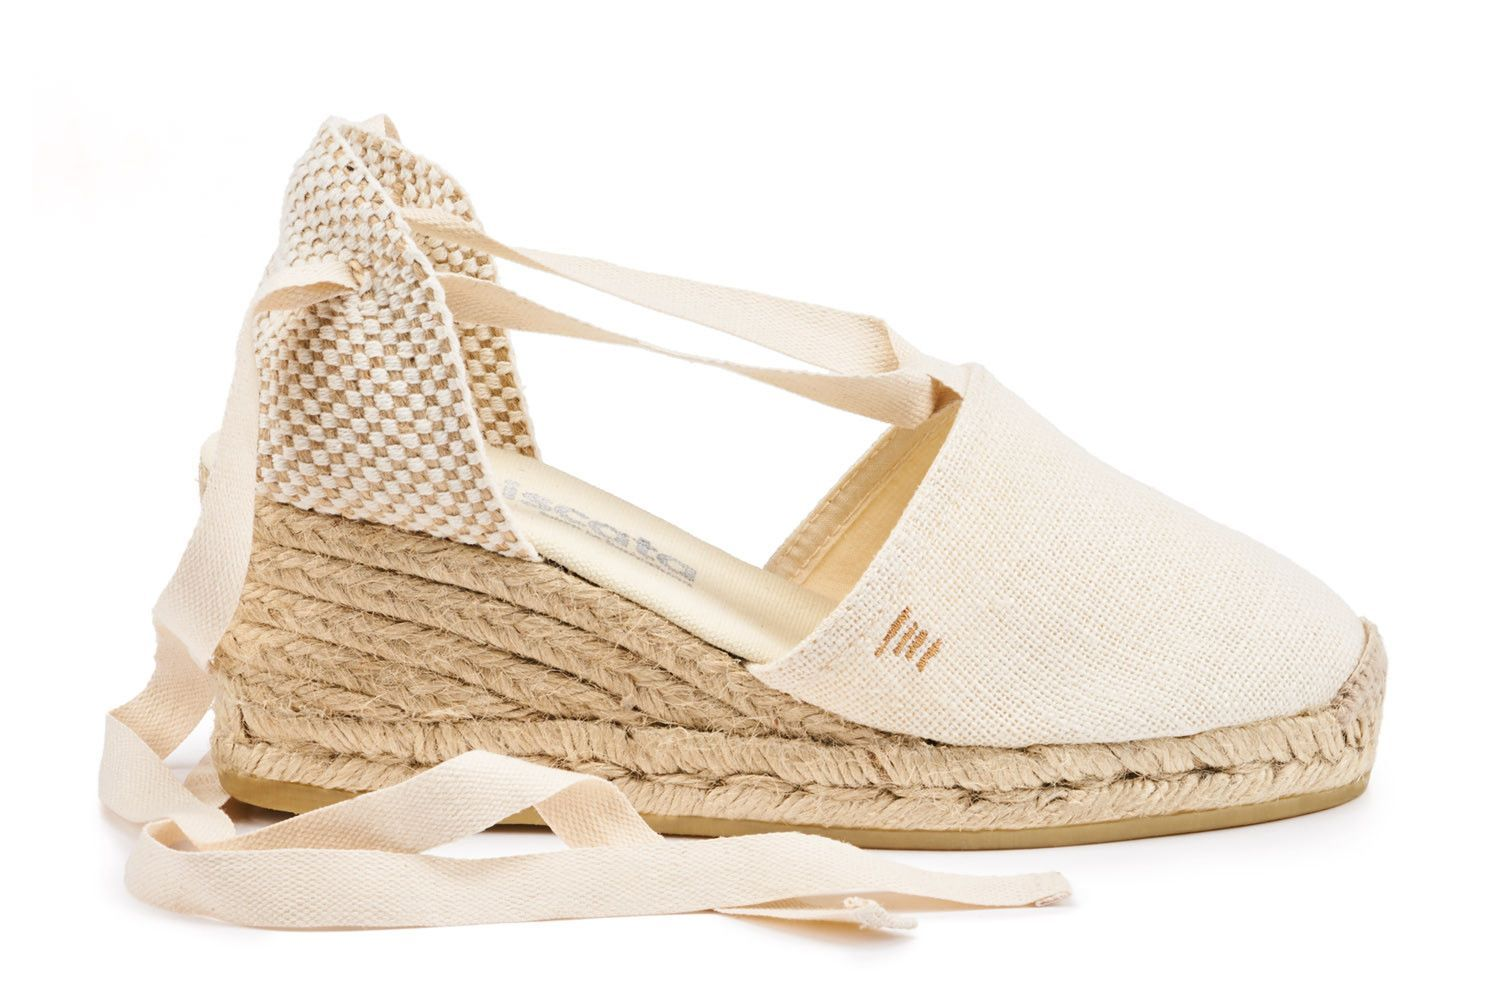 9c79823f41a Escala Linen Wedges - Ivory | Products | Wedges, Espadrilles ...